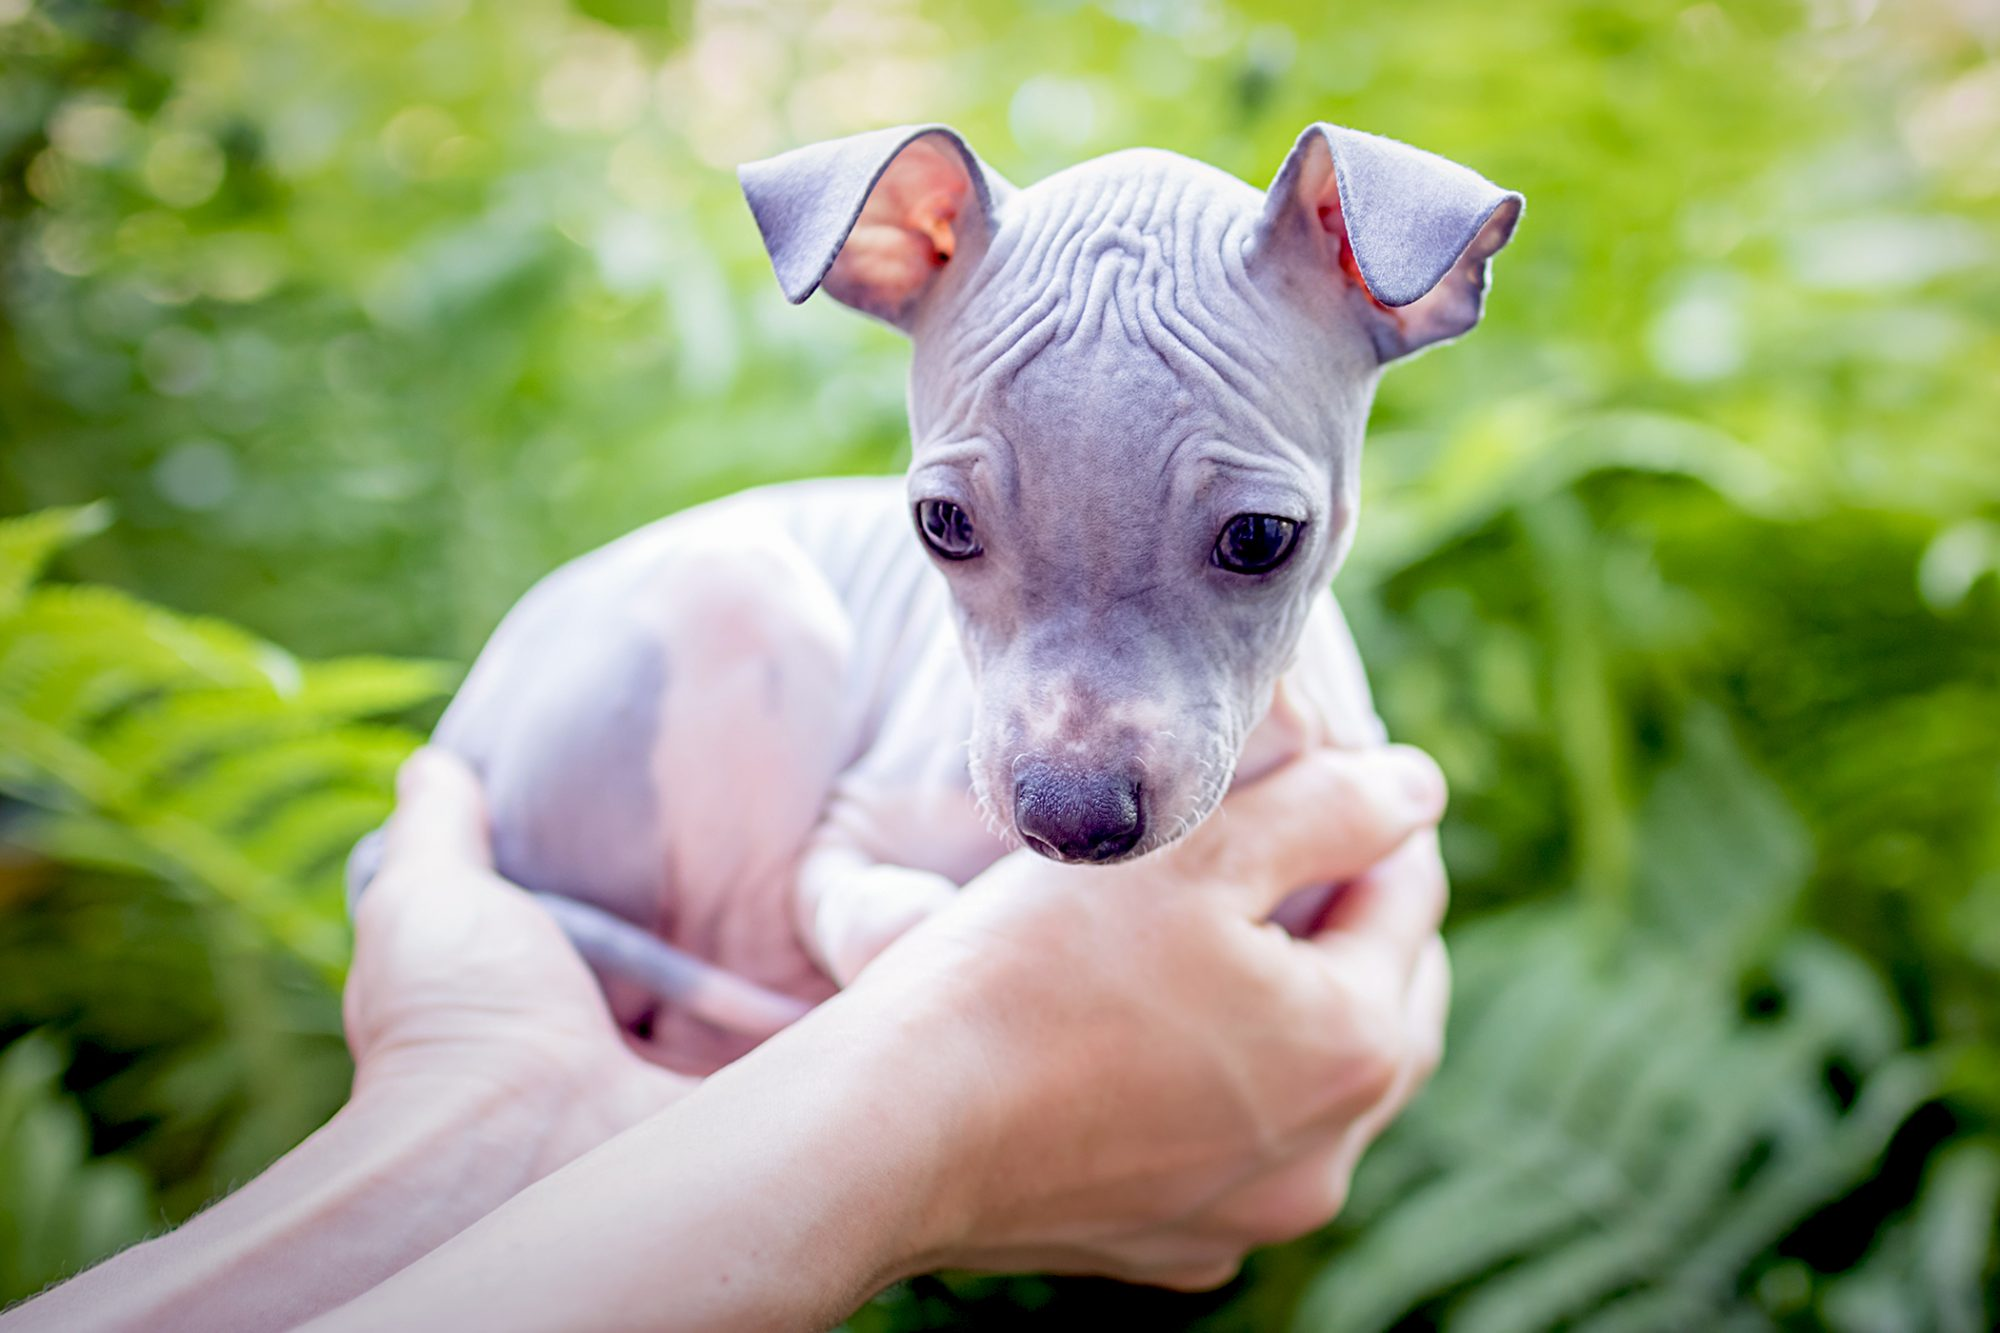 owner holding their american hairless terrier puppy in their hands near green foliage